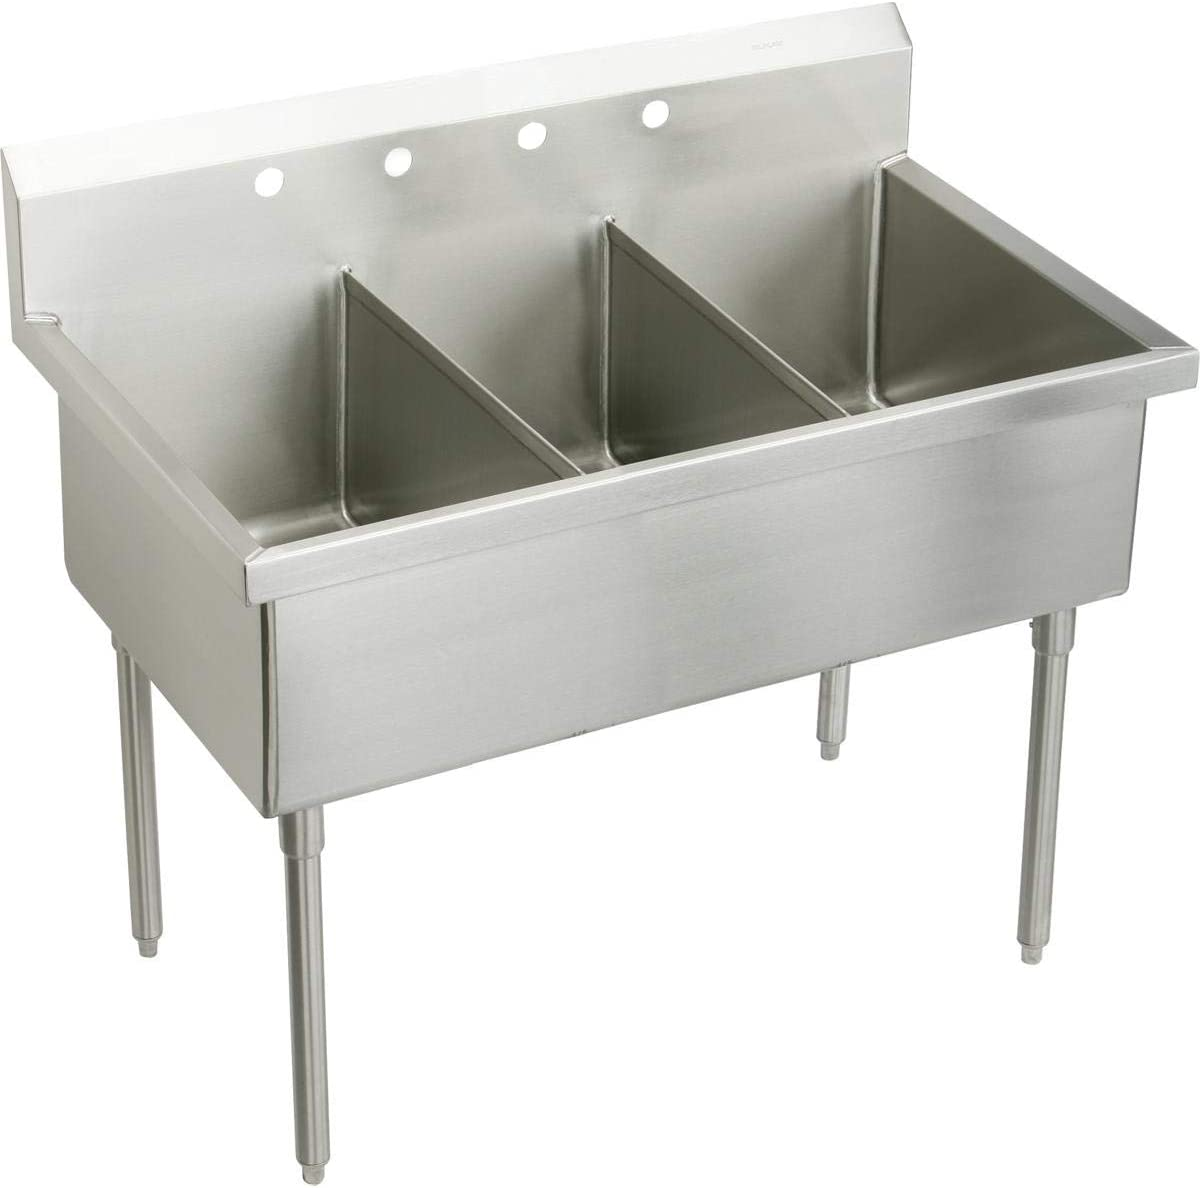 Sales of SALE items from new works Elkay SS83453 Commercial Sink Finish Lustrous Satin Max 54% OFF